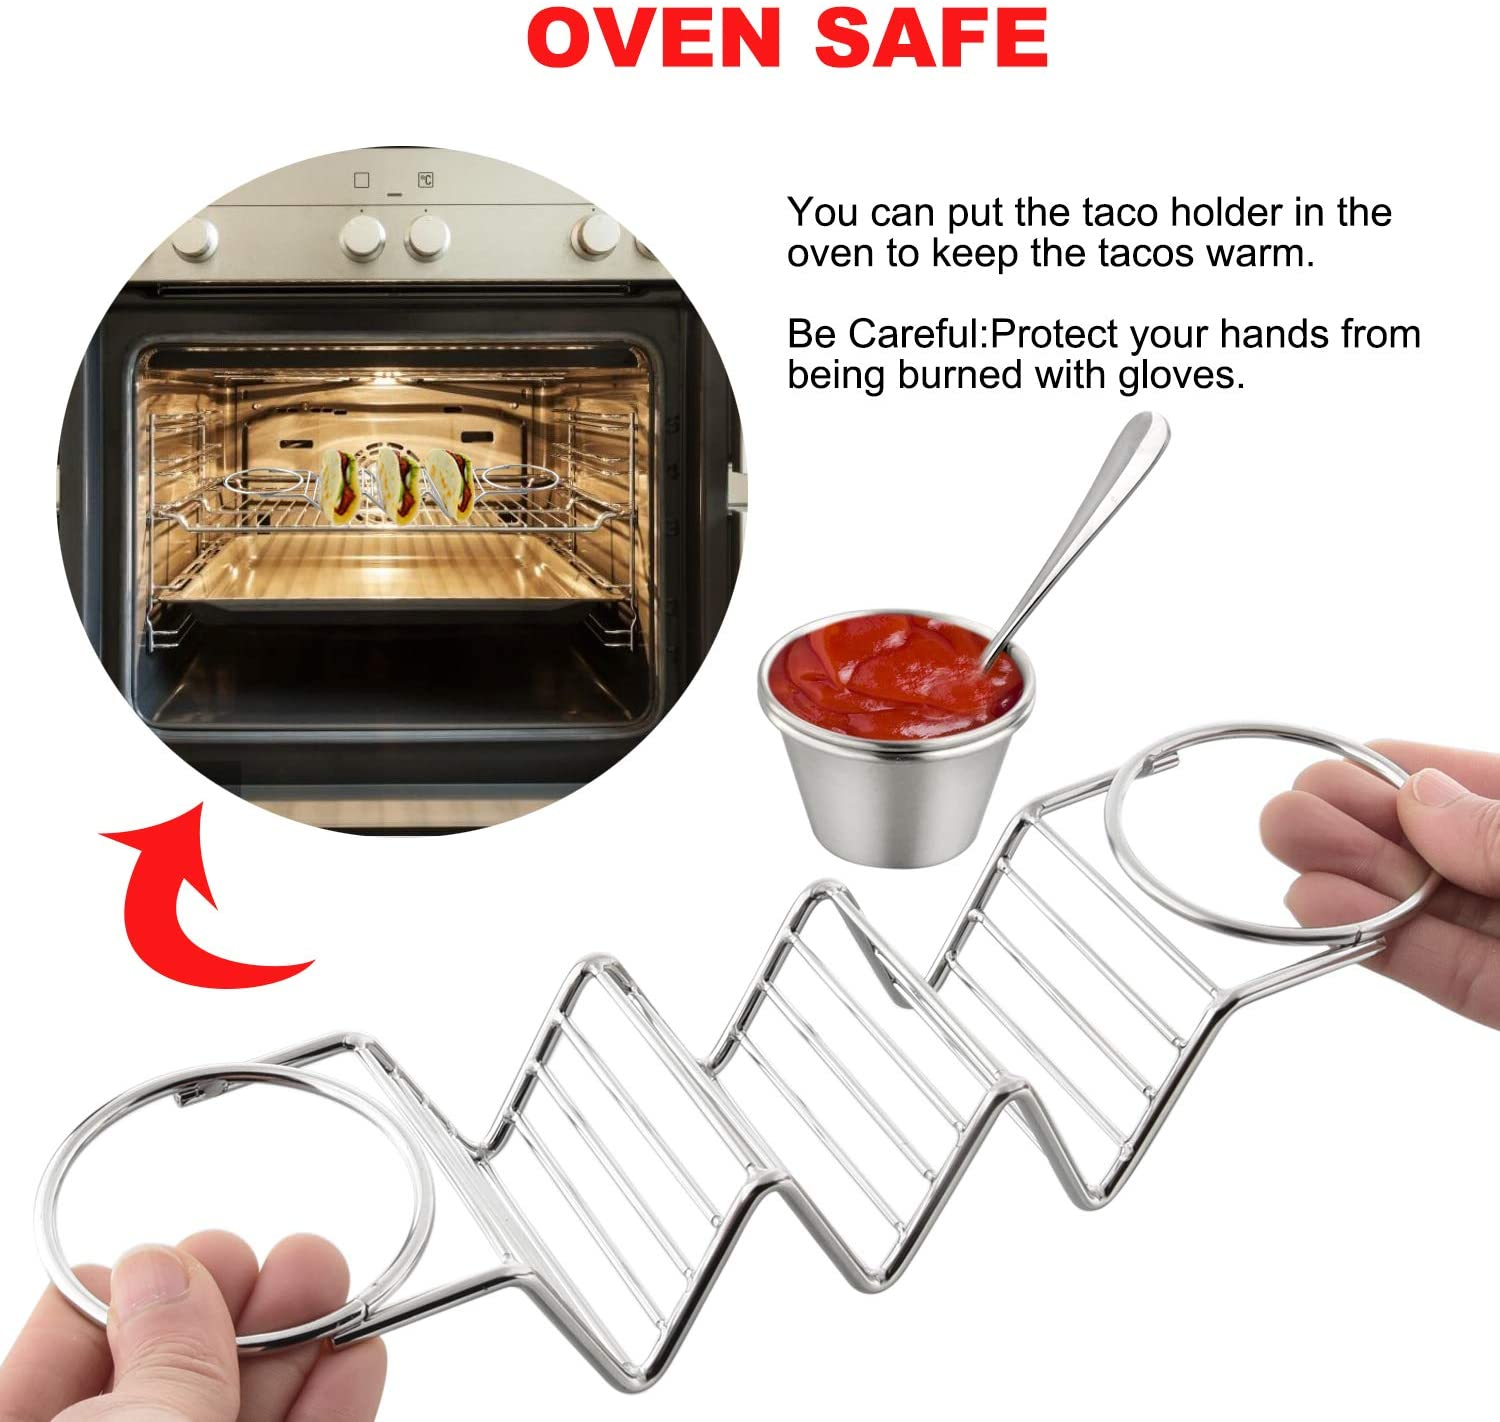 Taco Holder 2 Pack Taco Stand Stainless Steel Taco Rack Wave Shaped Taco Tray Holds 3 Hard or Soft Shells Serving with 4 Salad Cups /& 2 Little Spoons Thick Metal Safe For Dishwasher And Oven